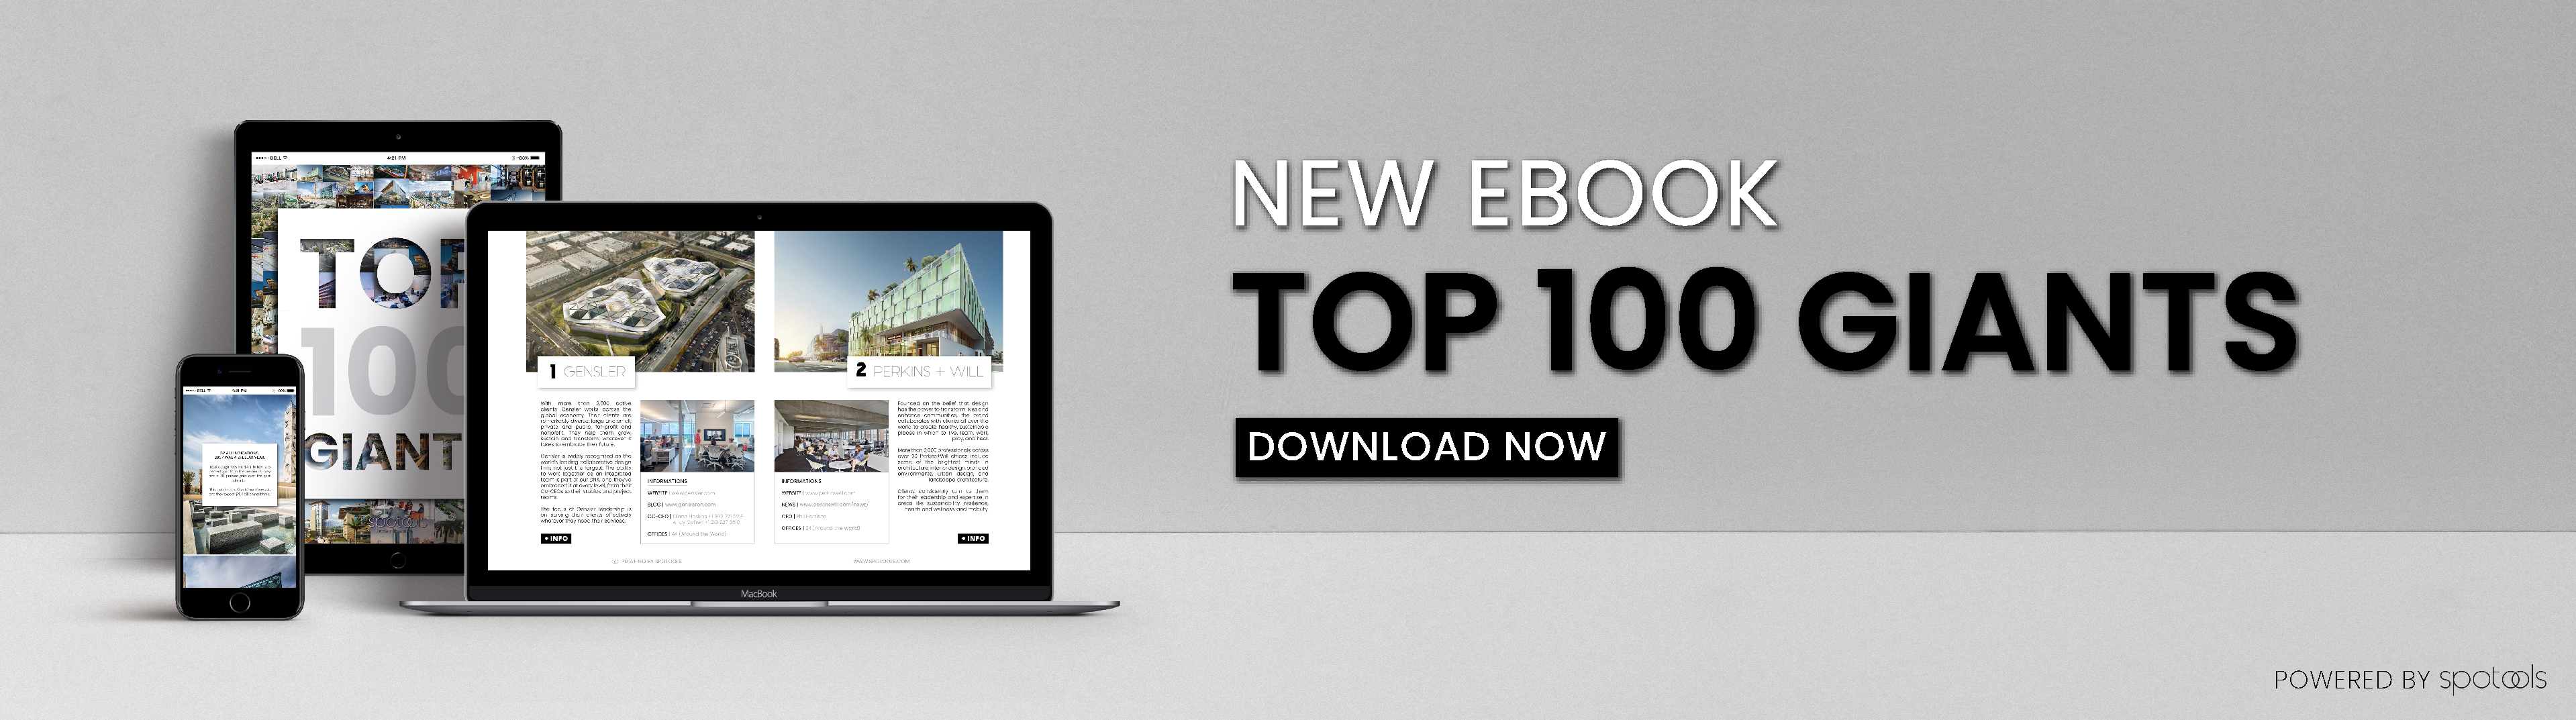 BANNER EBOOK TOP 100 GIANTS - Top 100 Design and Architecture Firms You Must Know design and architecture Top 100 Design and Architecture Firms You Must Know BANNER EBOOK TOP 100 GIANTS 1